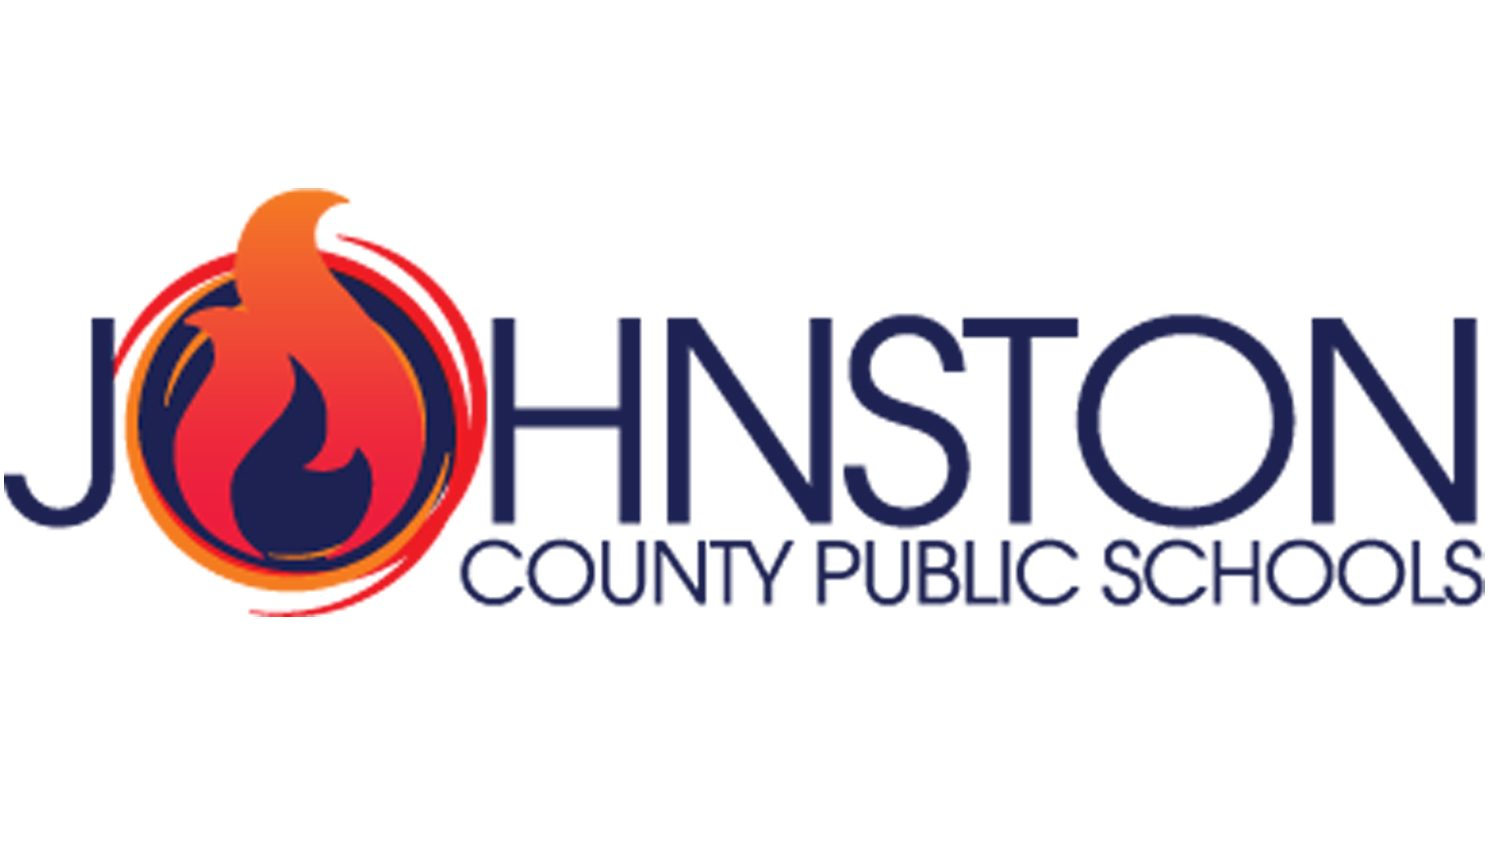 Johnston County Schools Logo